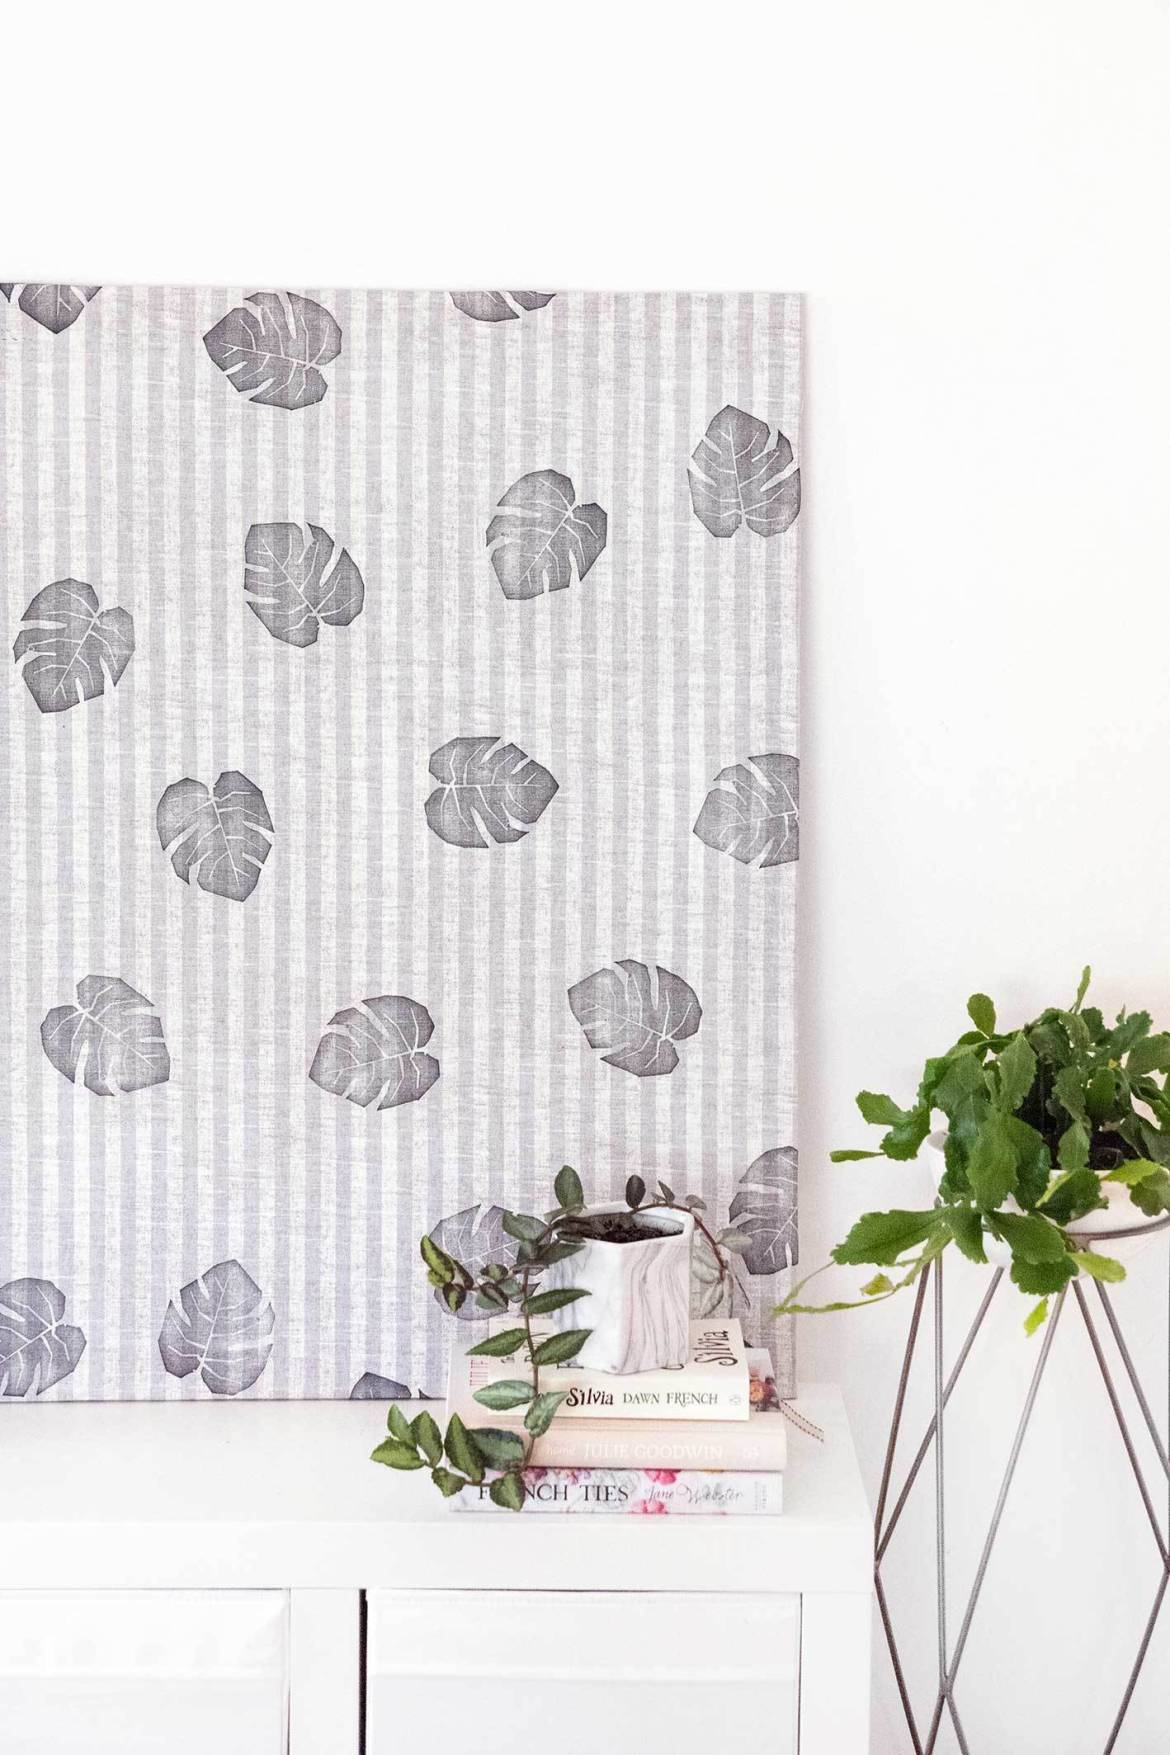 Stretched fabric wall art: An easy way to make beautiful art without breaking the bank!